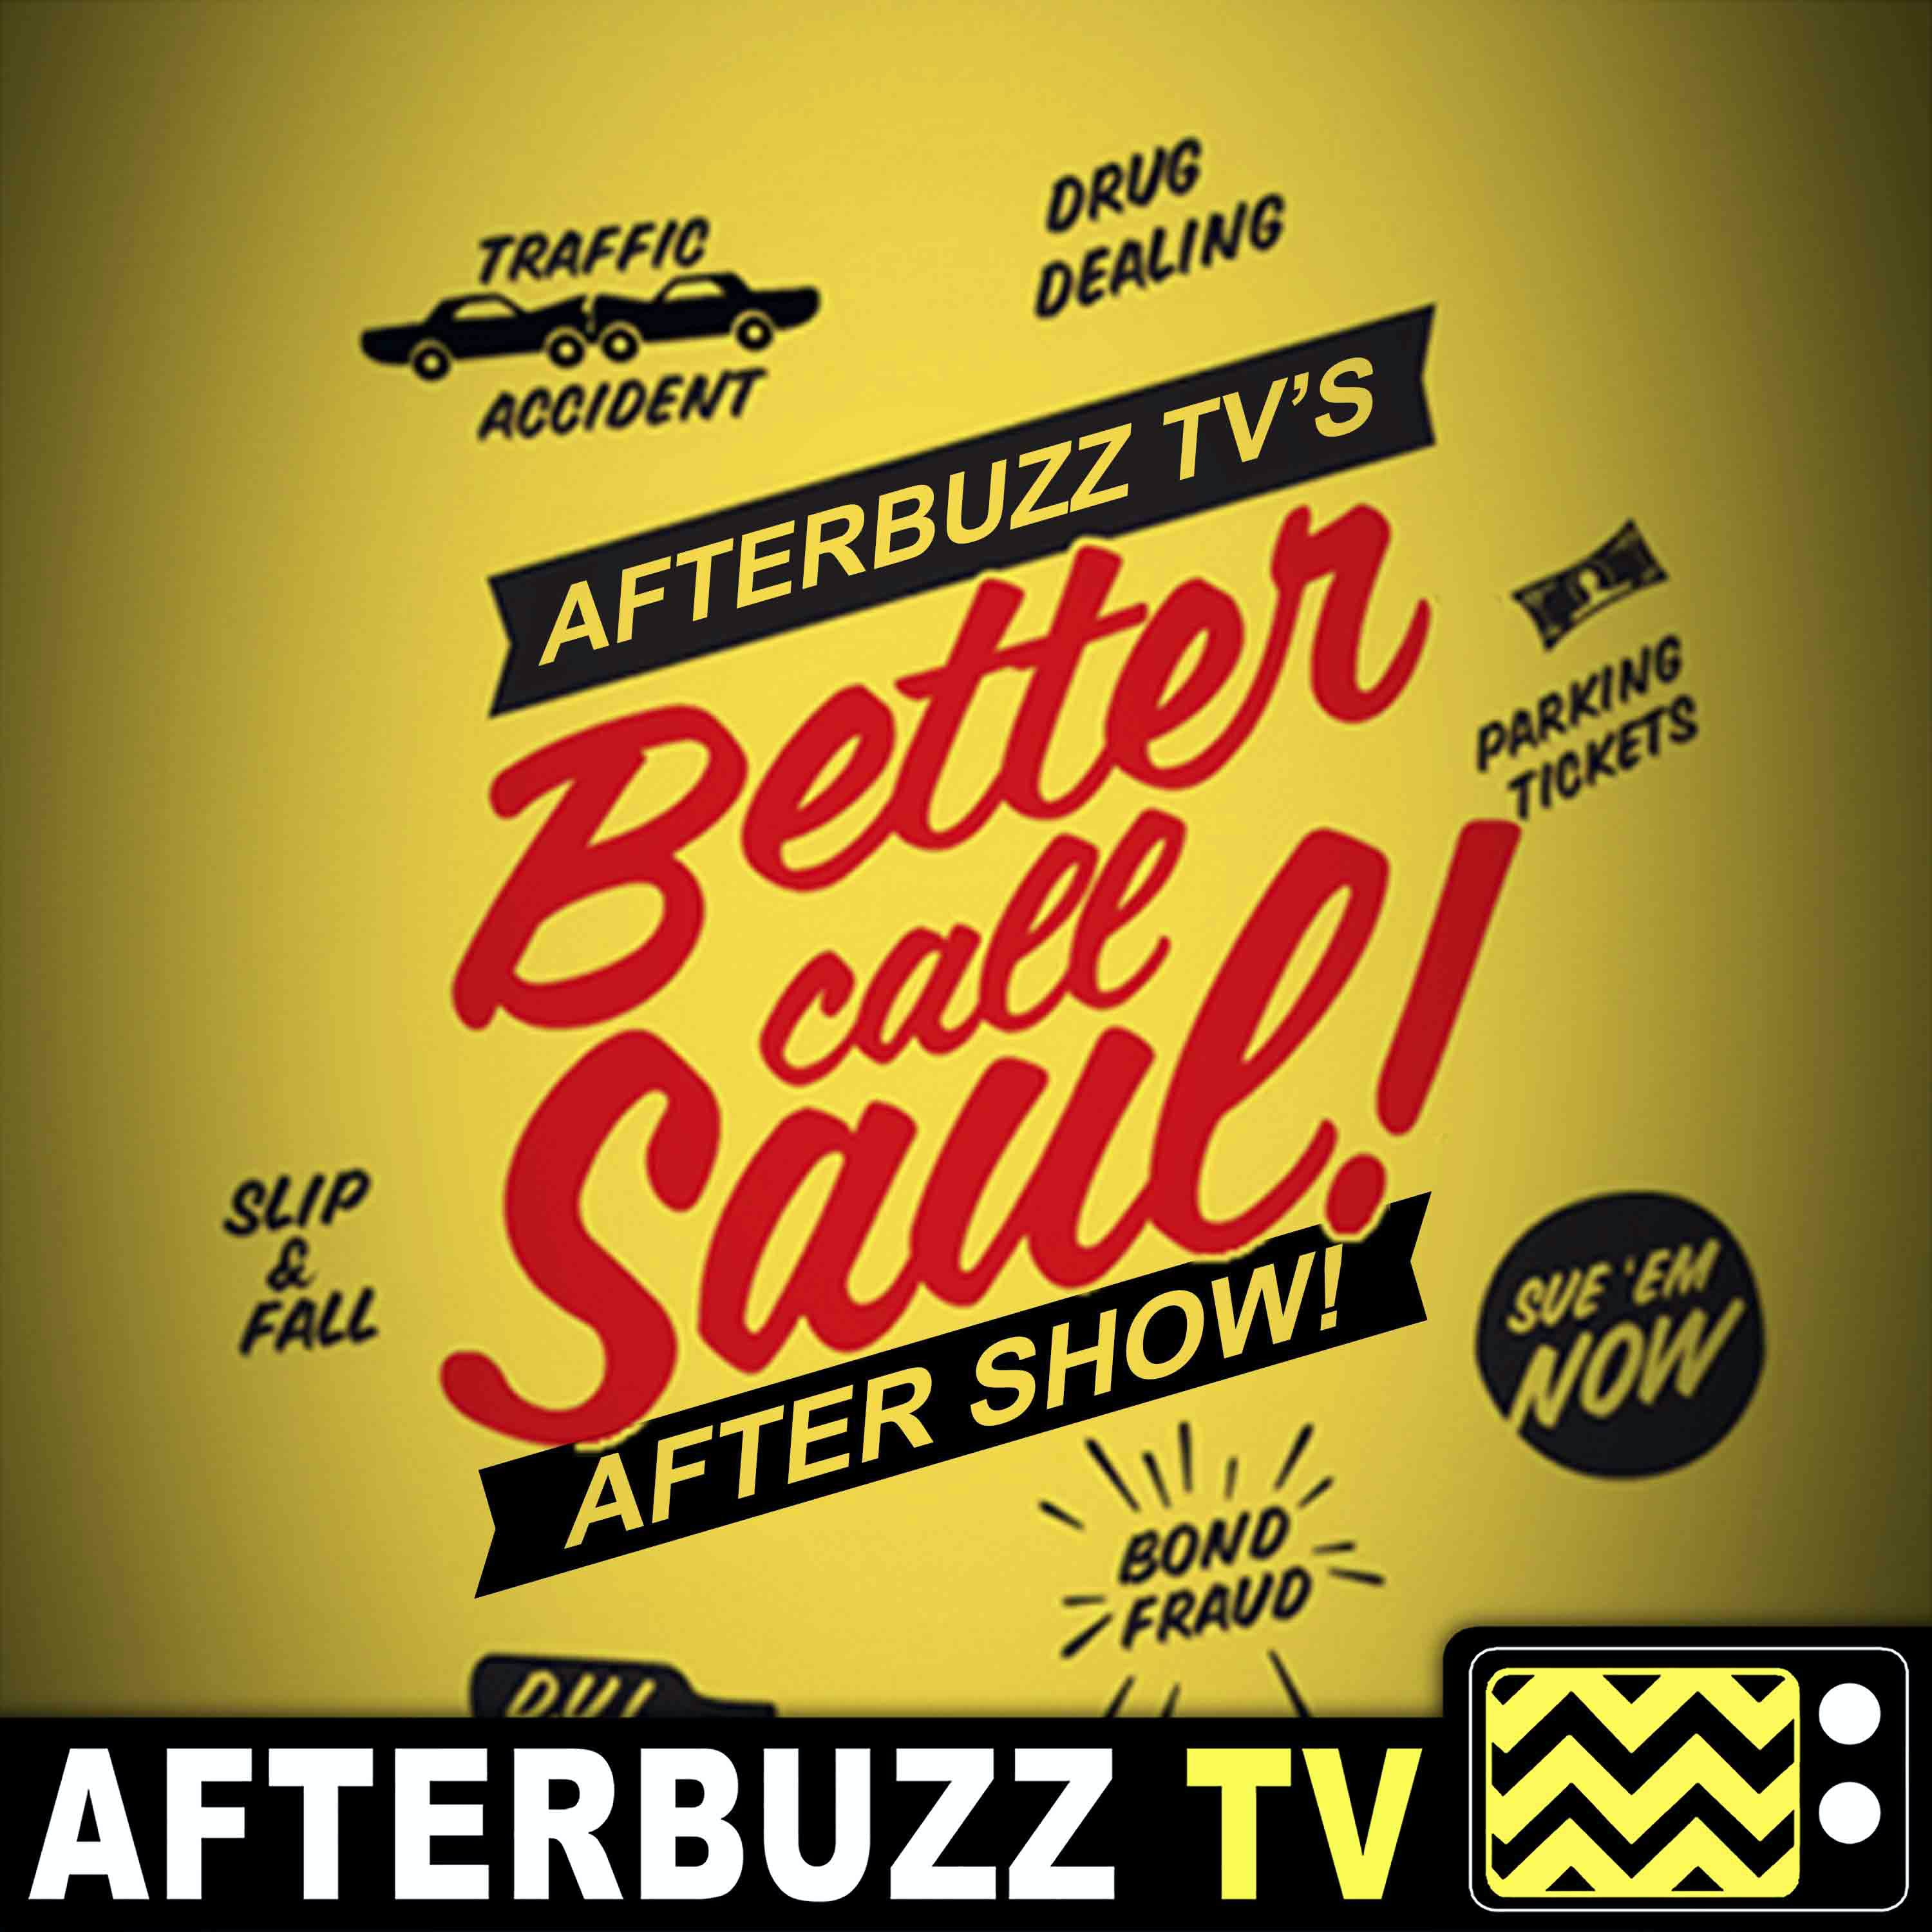 Lalo Unleashed! - S5 E10 'Better Call Saul' After Show with Patrick Fabian